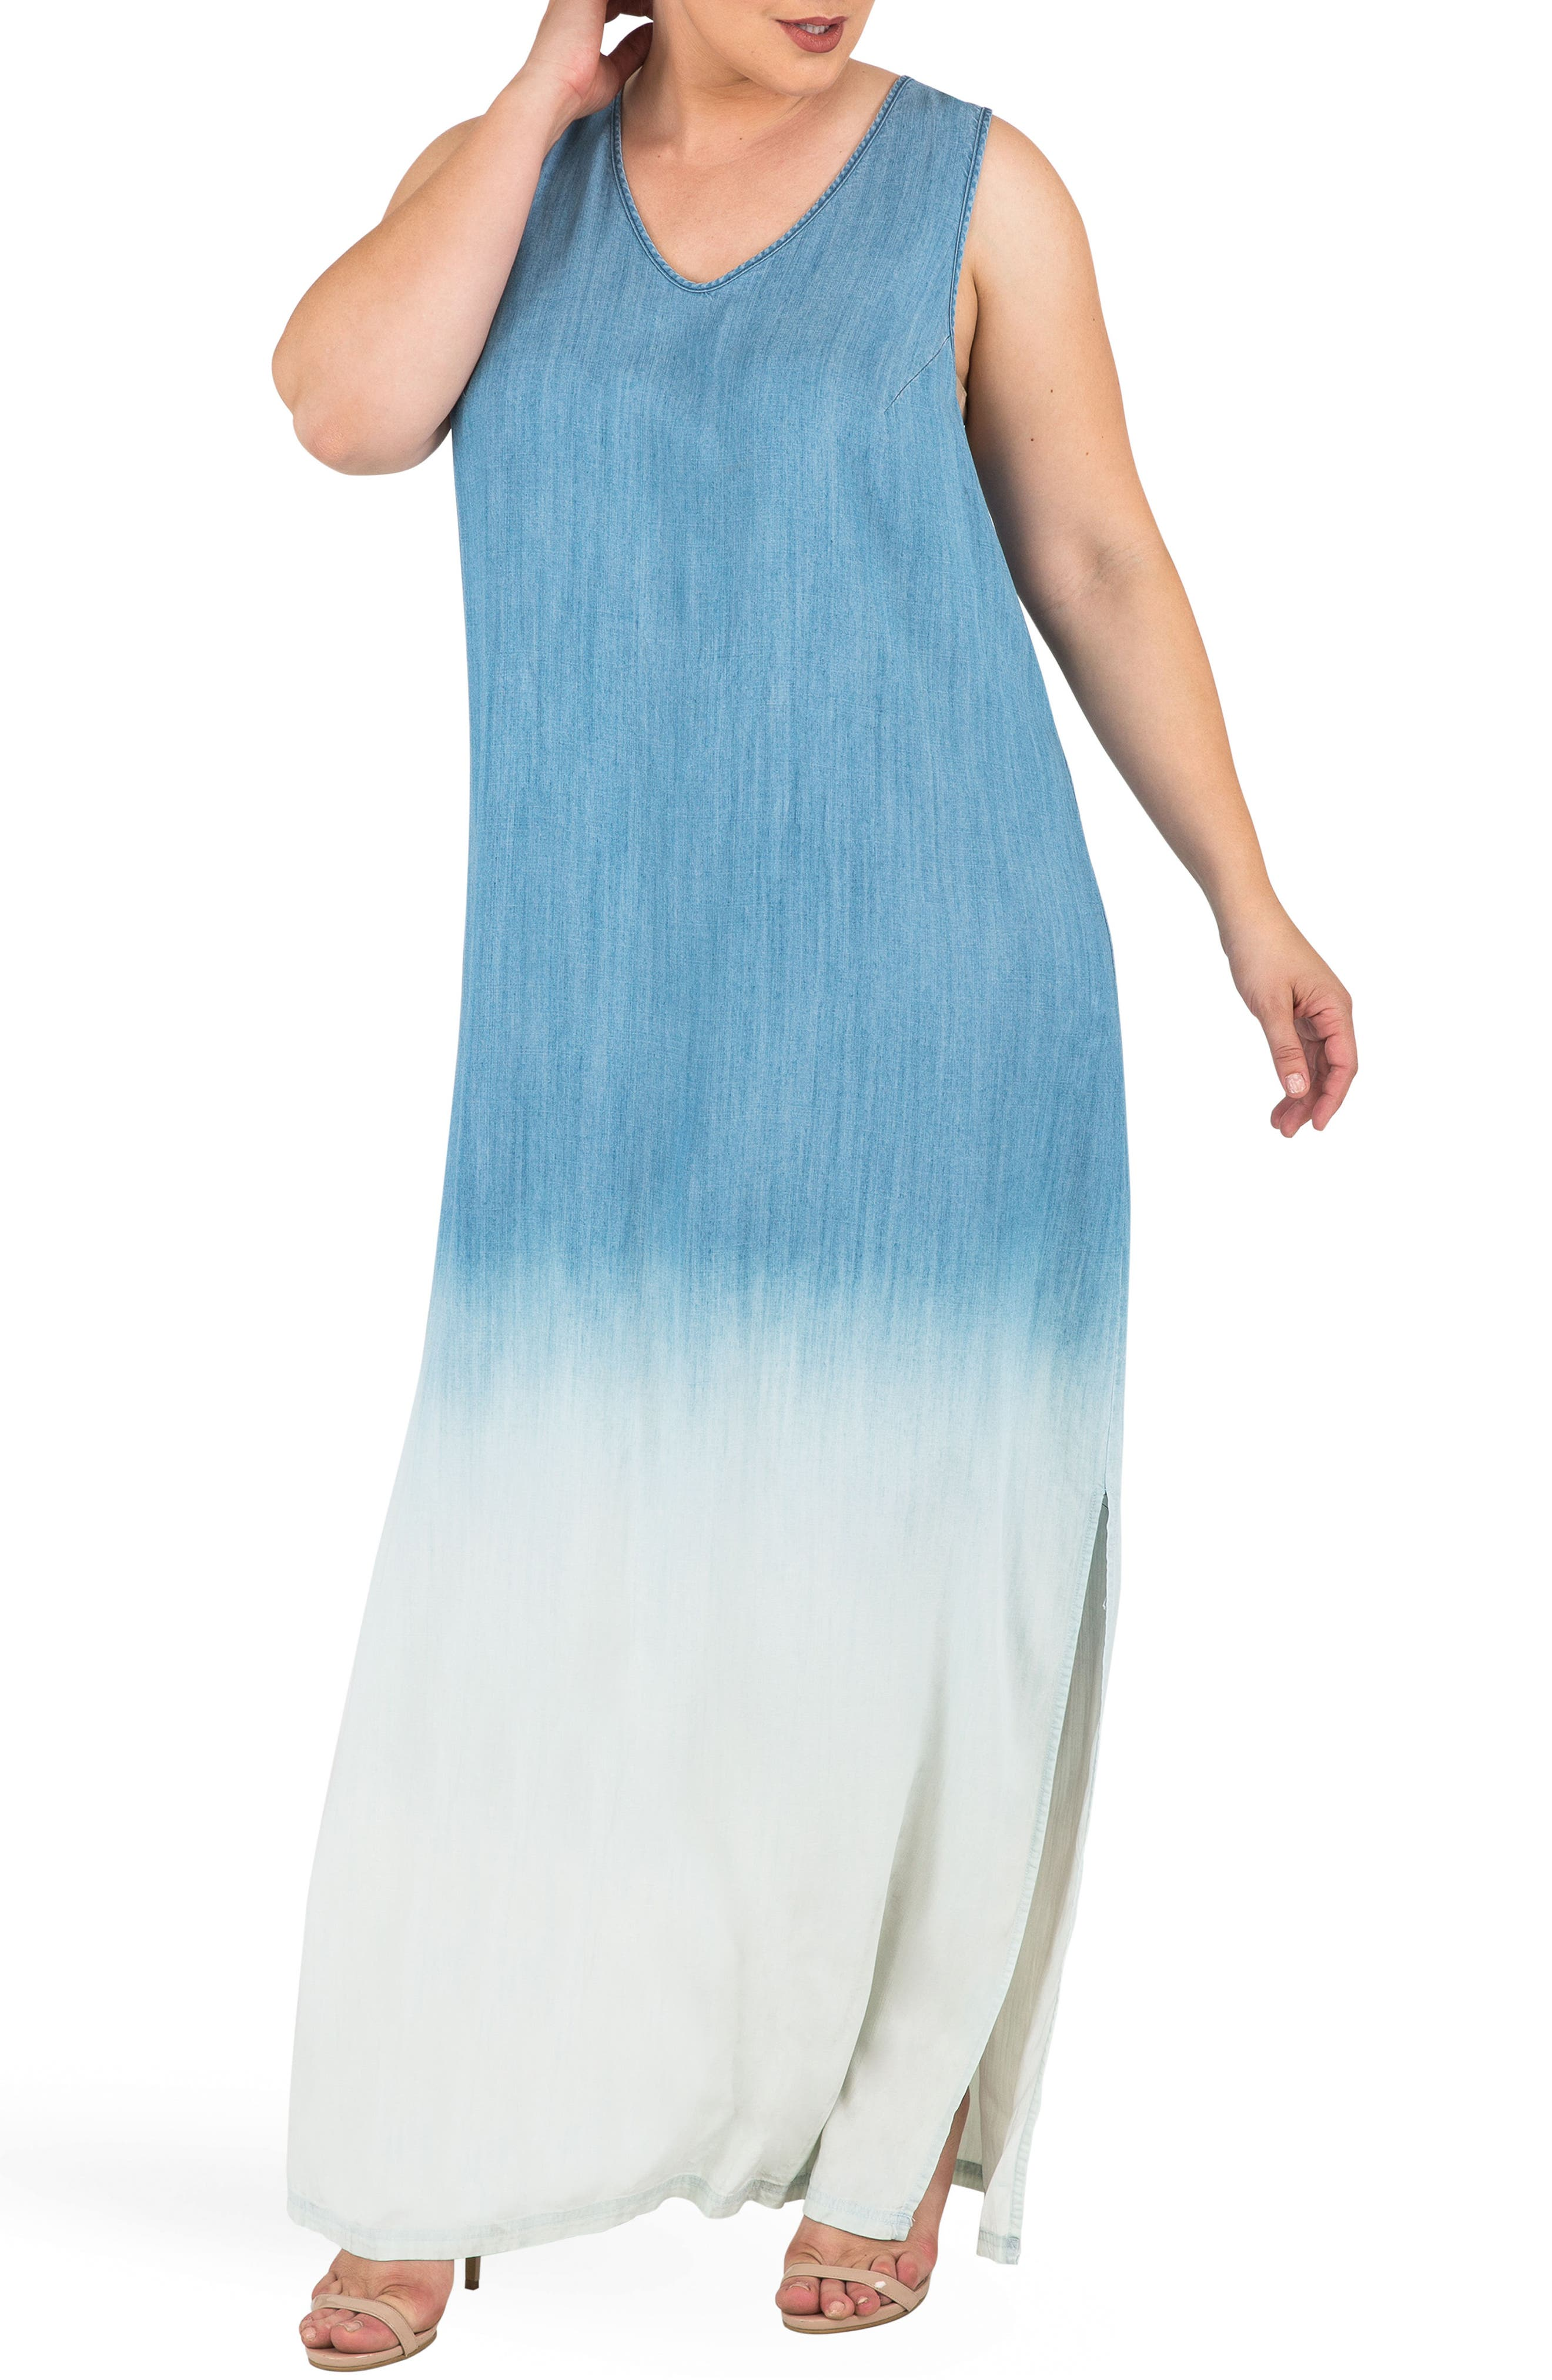 Main Image - Standards & Practices Angie Ombré Chmbray Maxi Dress (Plus Size)